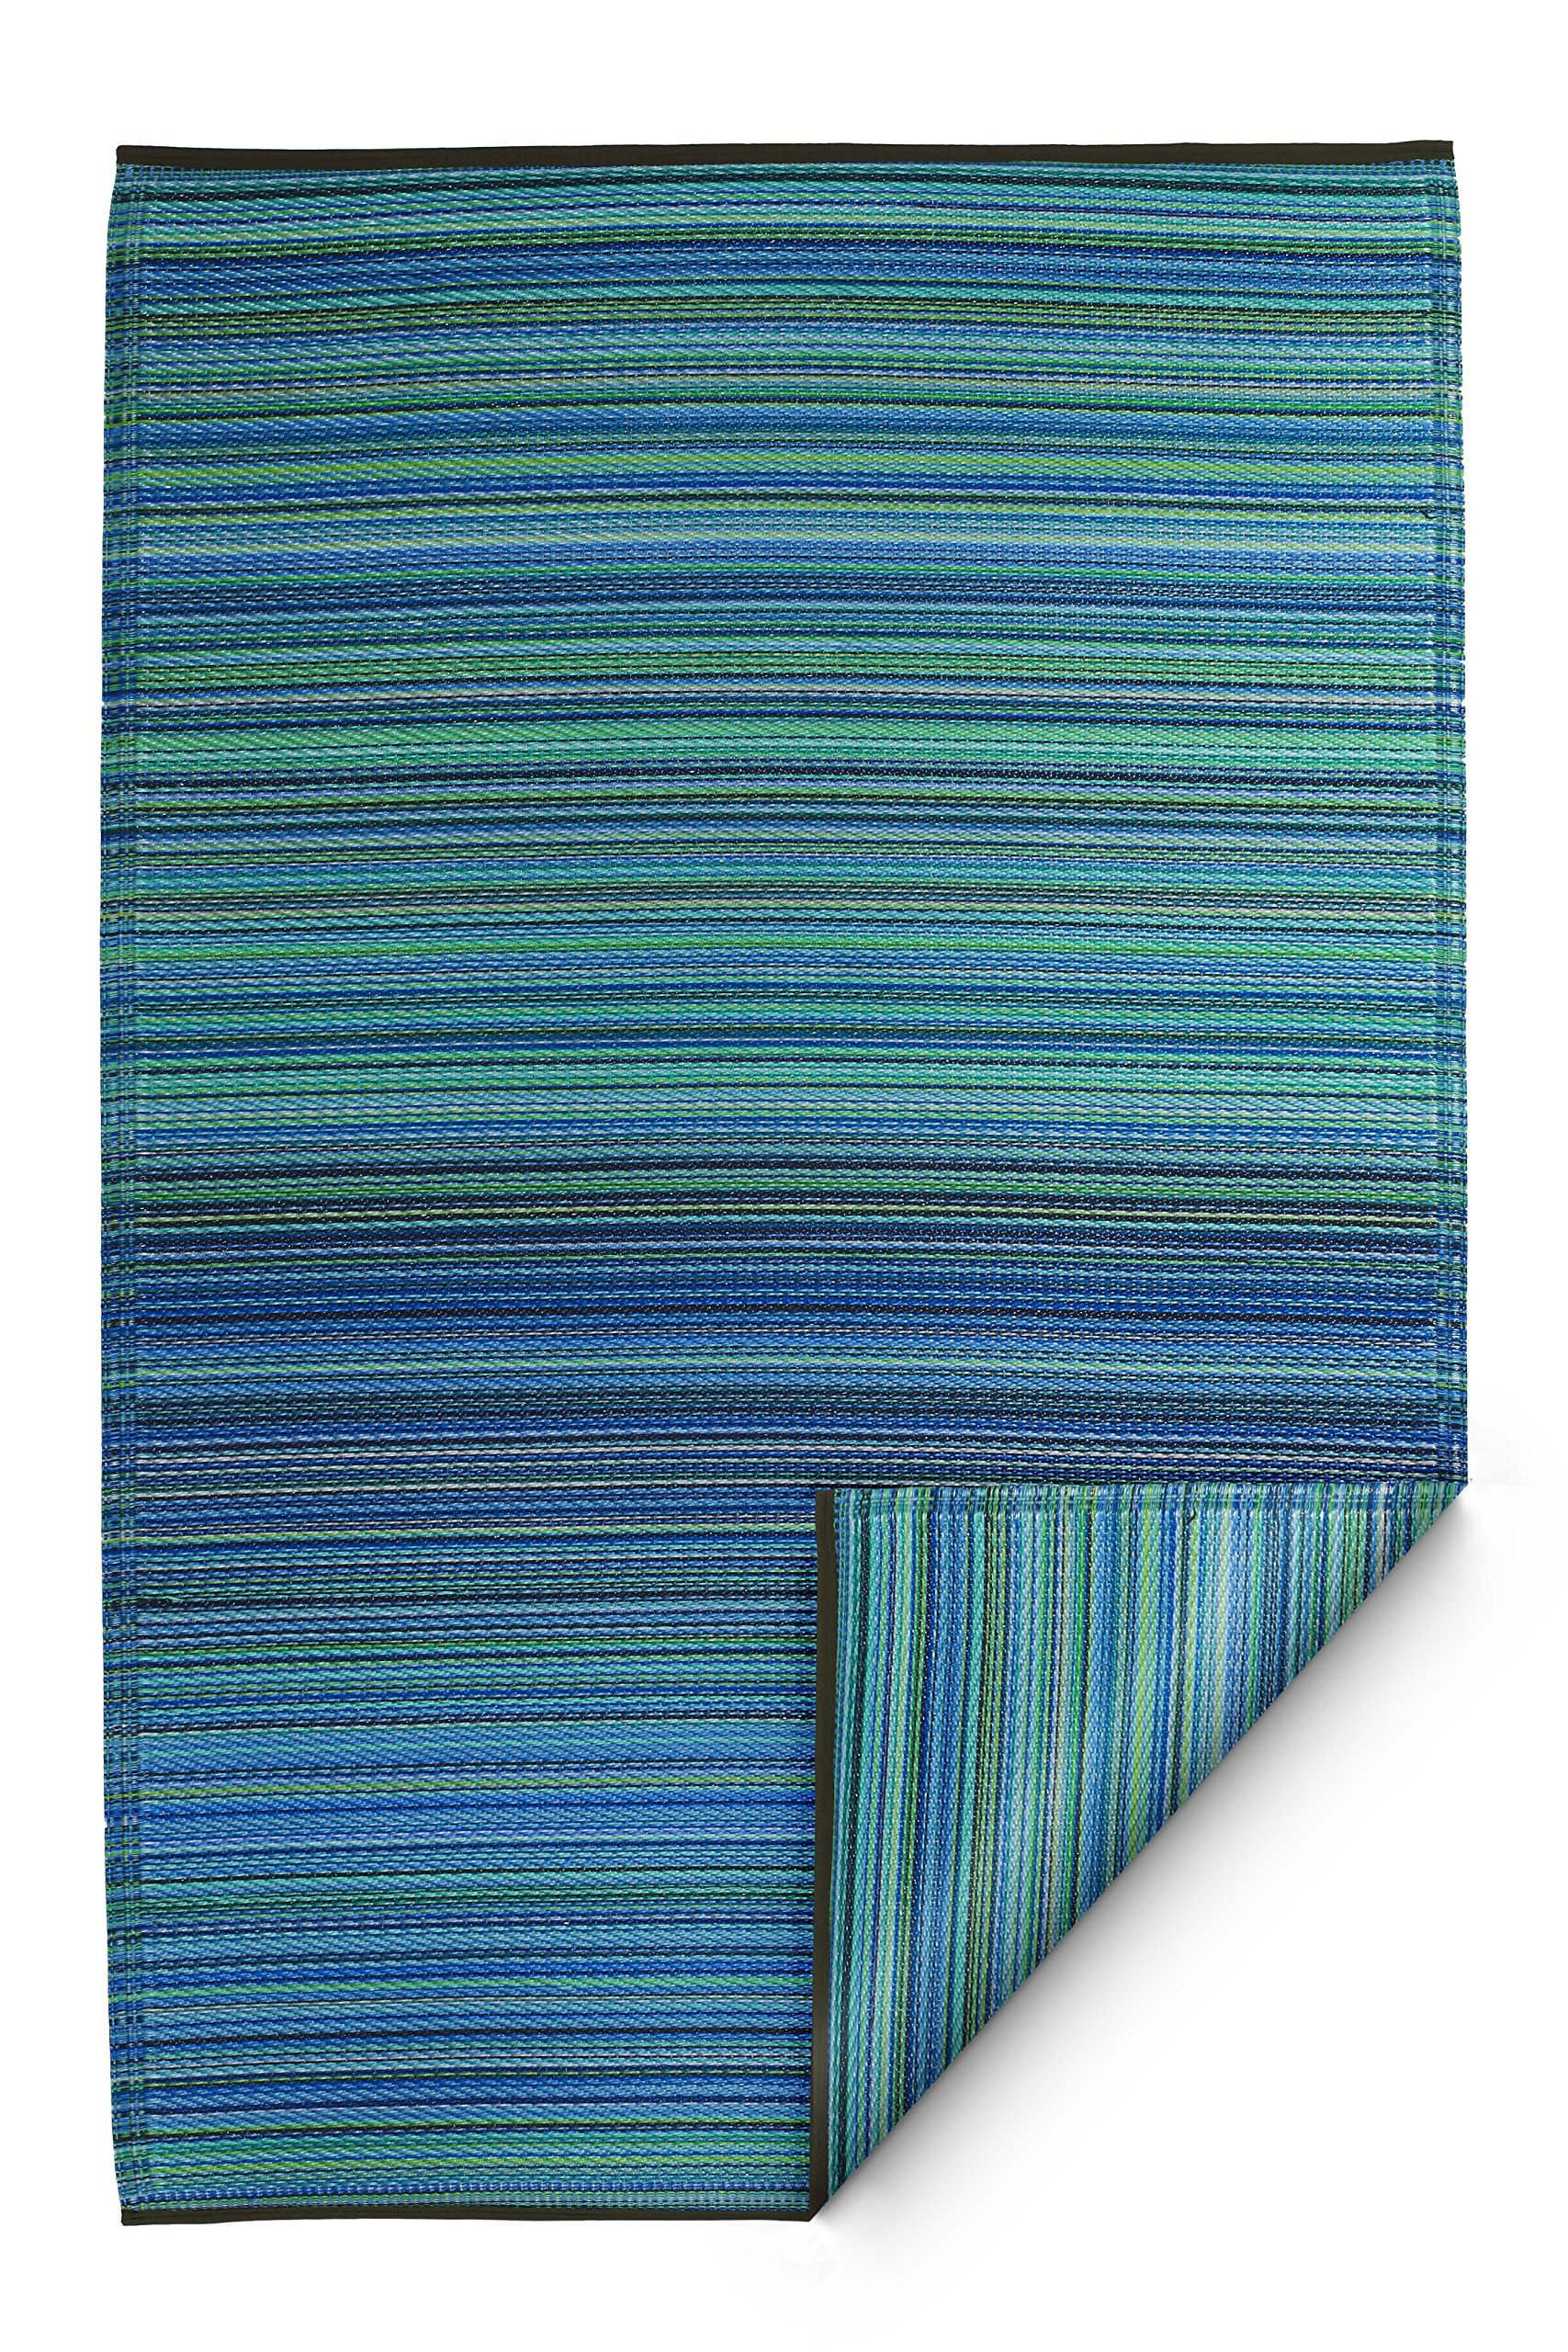 Fab Habitat Cancun Indoor/Outdoor Rug, Turquoise and Moss Green, 8' x 10'